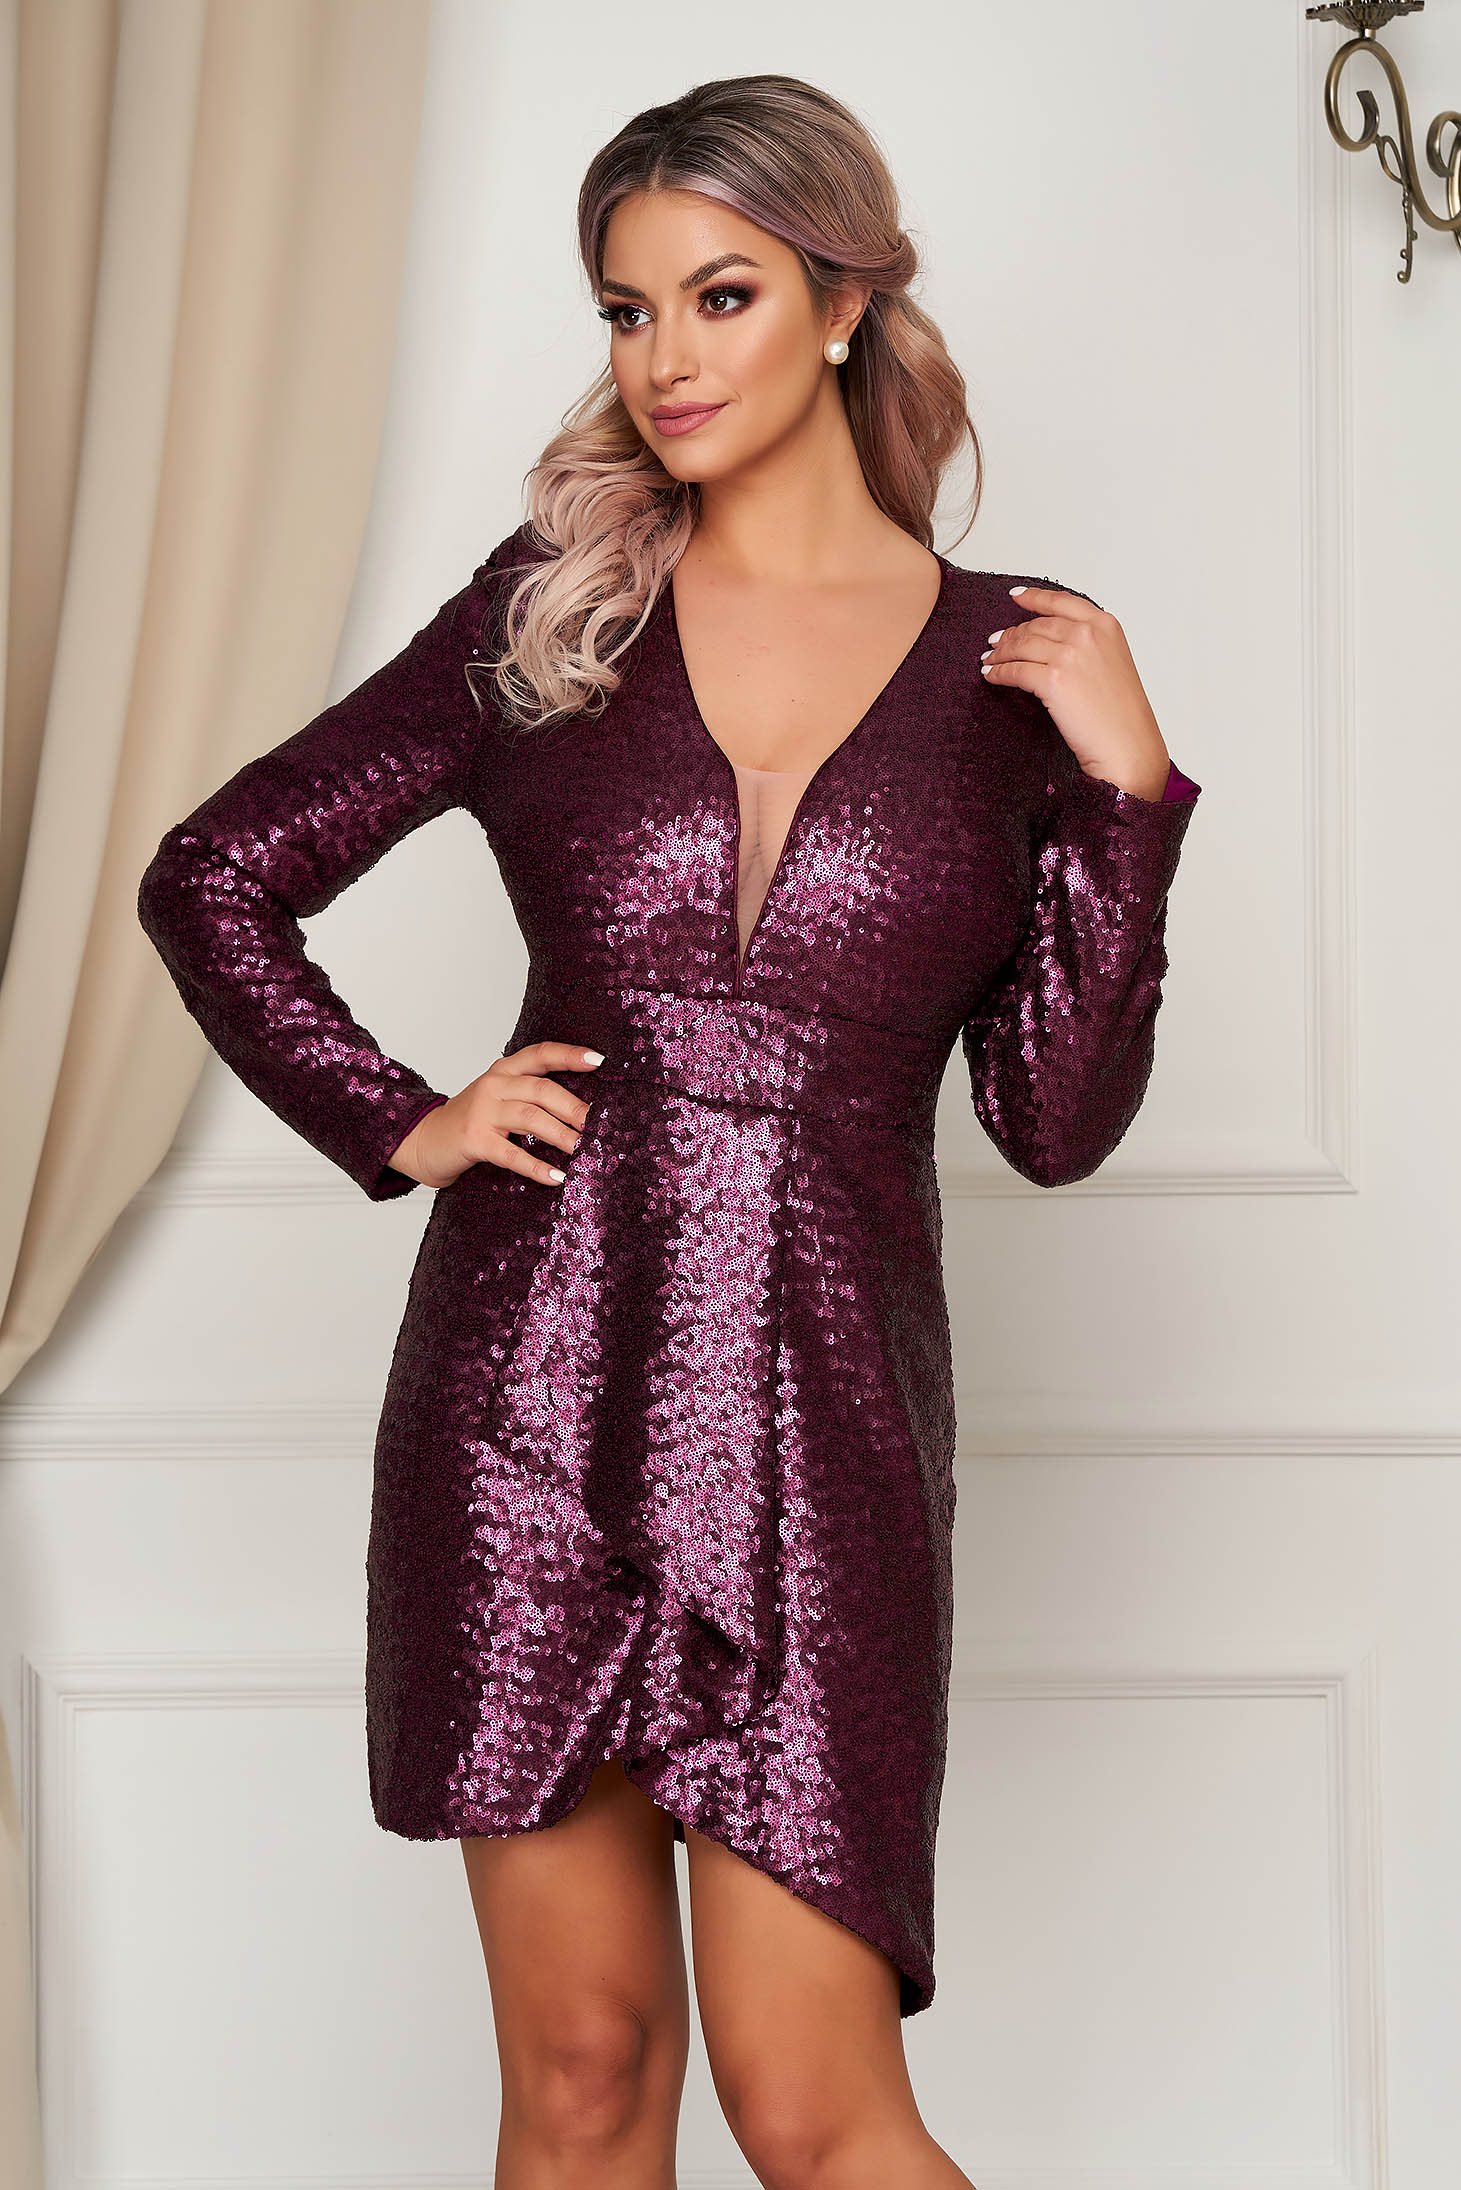 Purple dress with sequins occasional asymmetrical with v-neckline pencil with deep cleavage